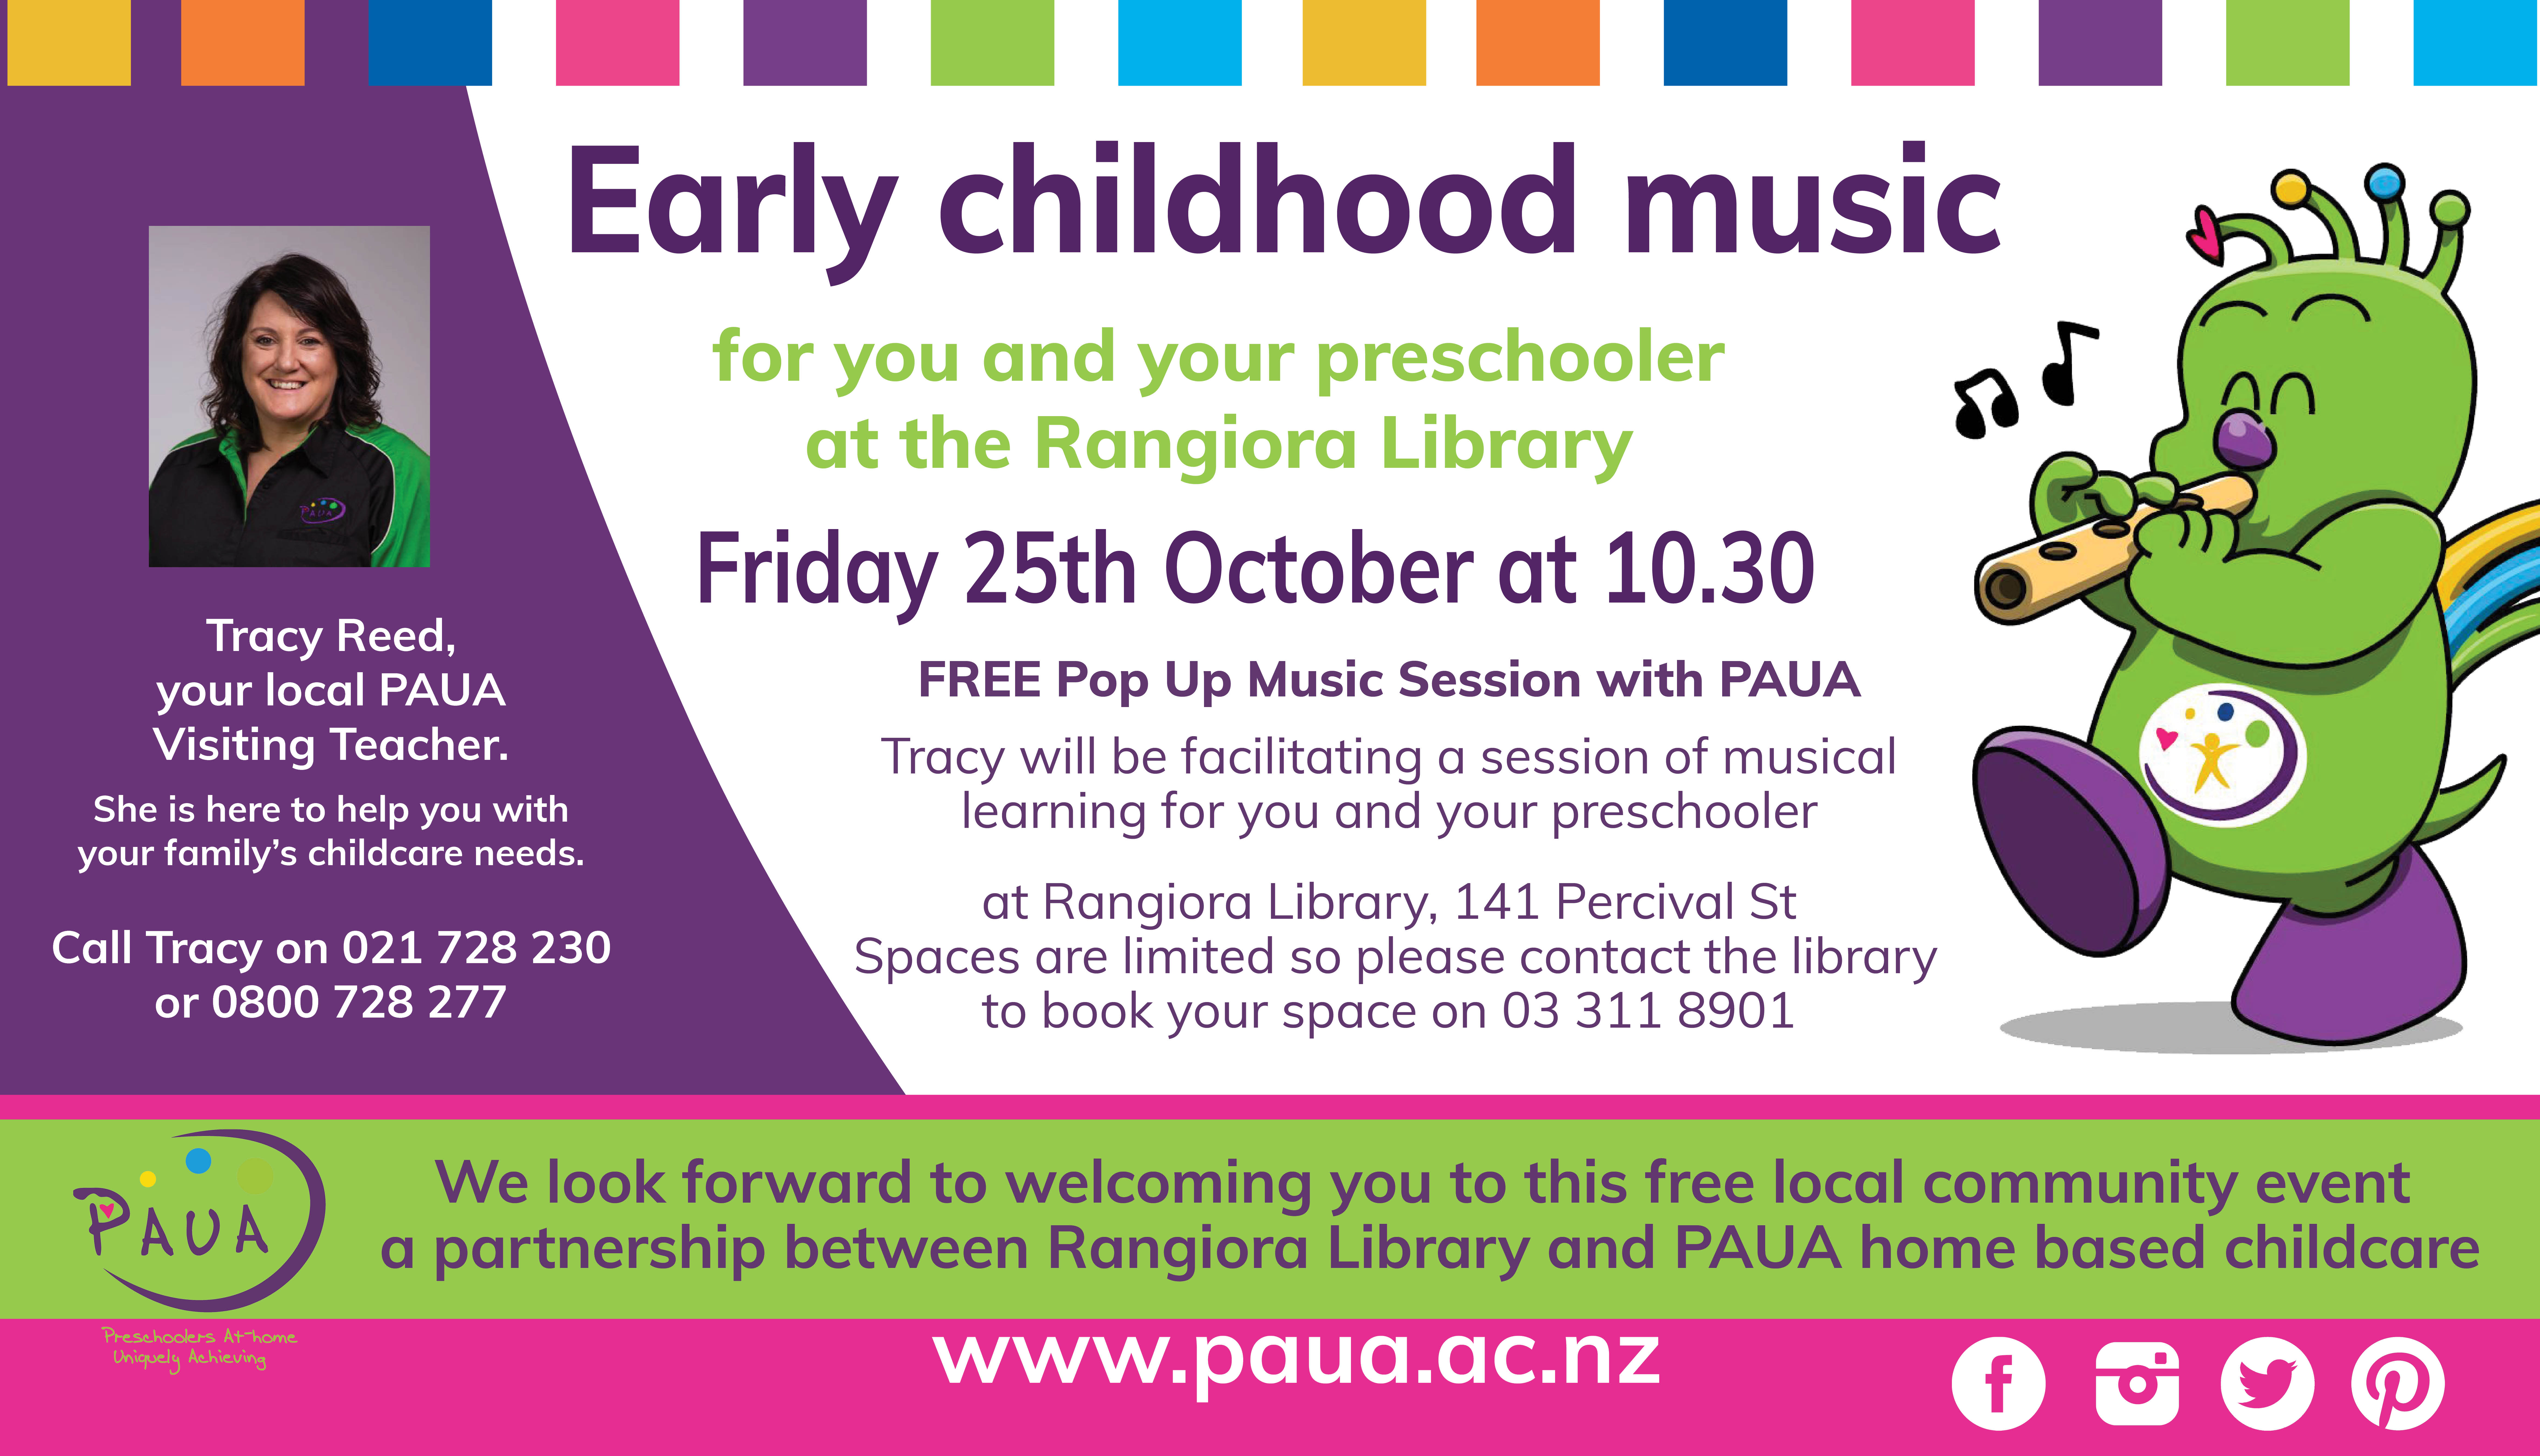 Early Childhood Music at the Library: PAUA Pop Up Music Session thumbnail image.